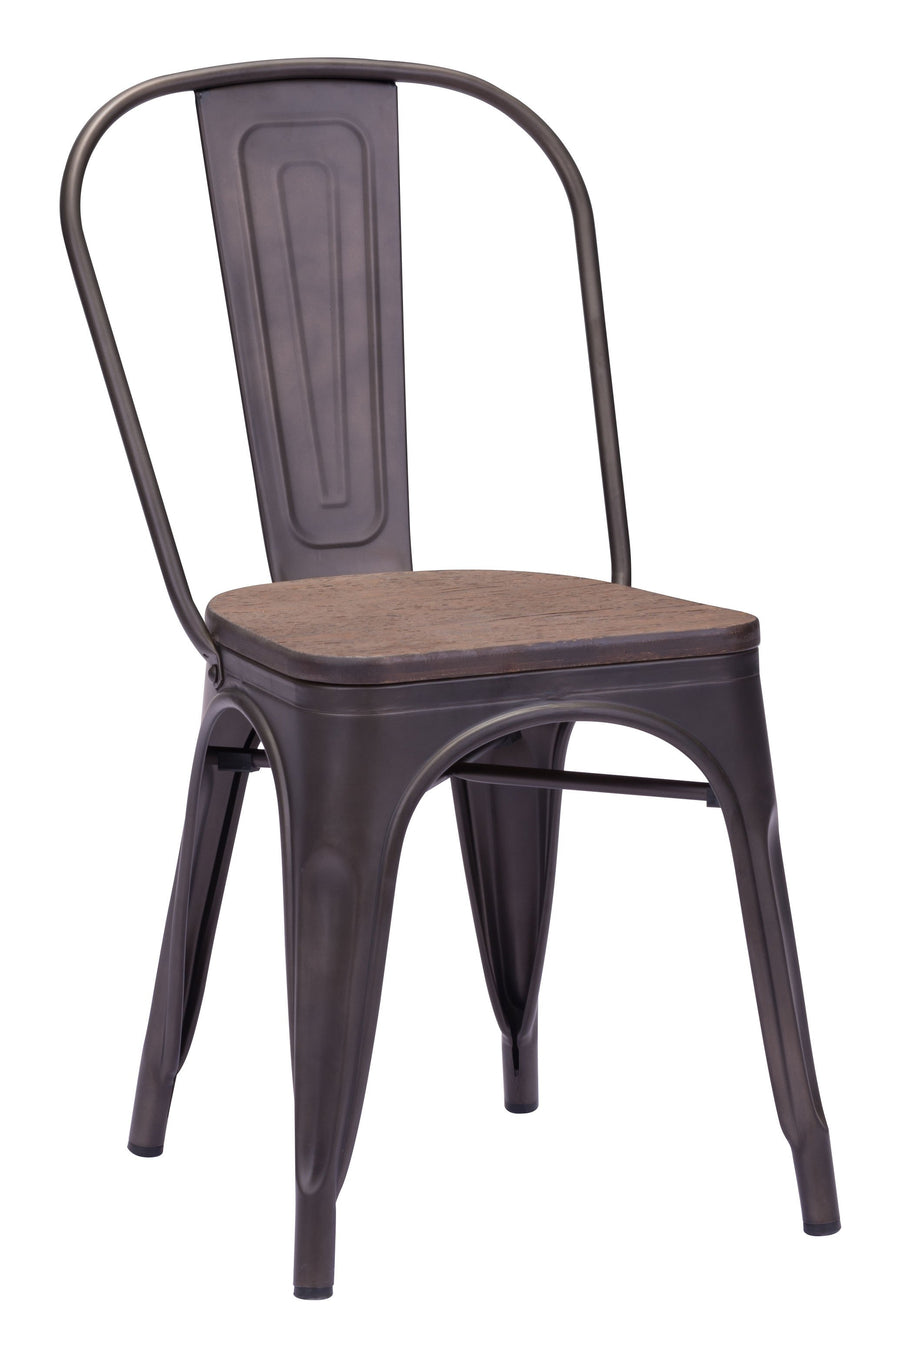 Elio Dining Chair Rustic Wood image